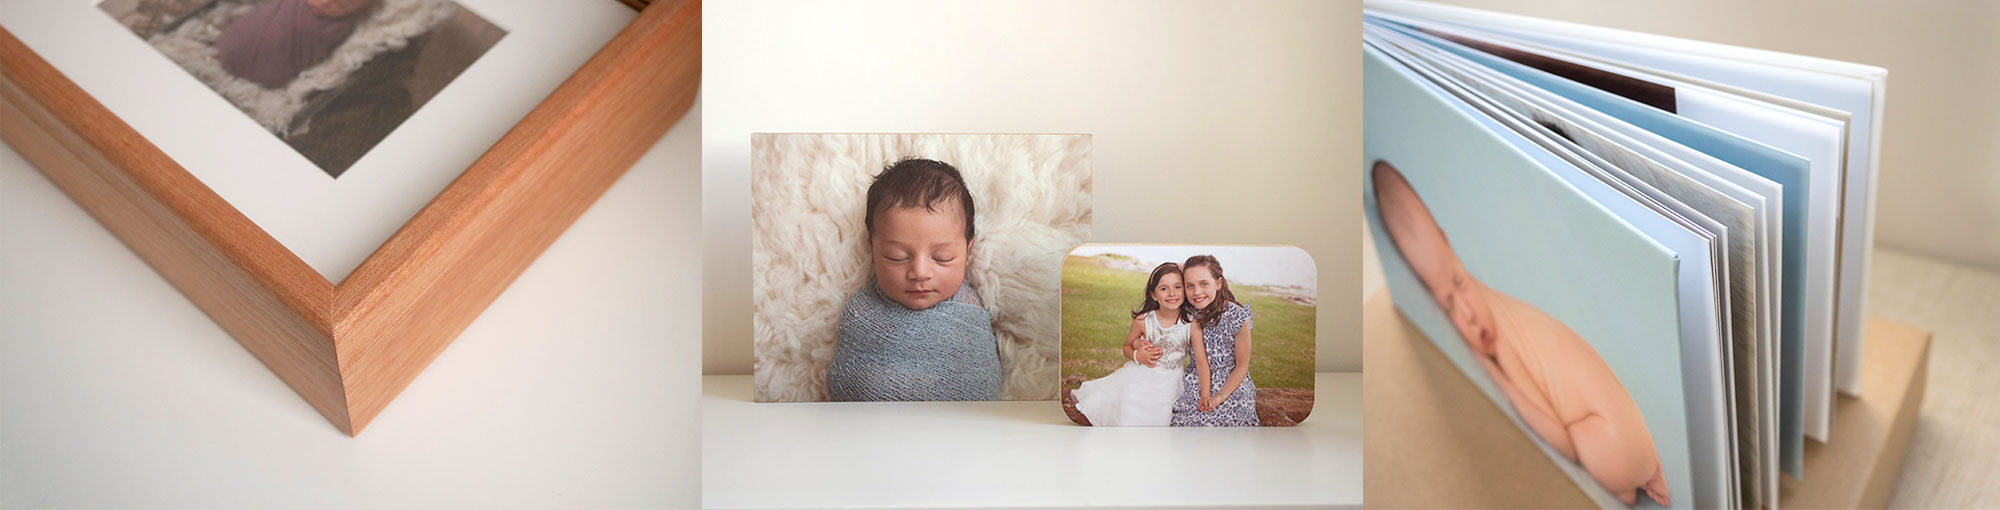 Newborn-photography-Gold-Coast-products-and-pricing-header